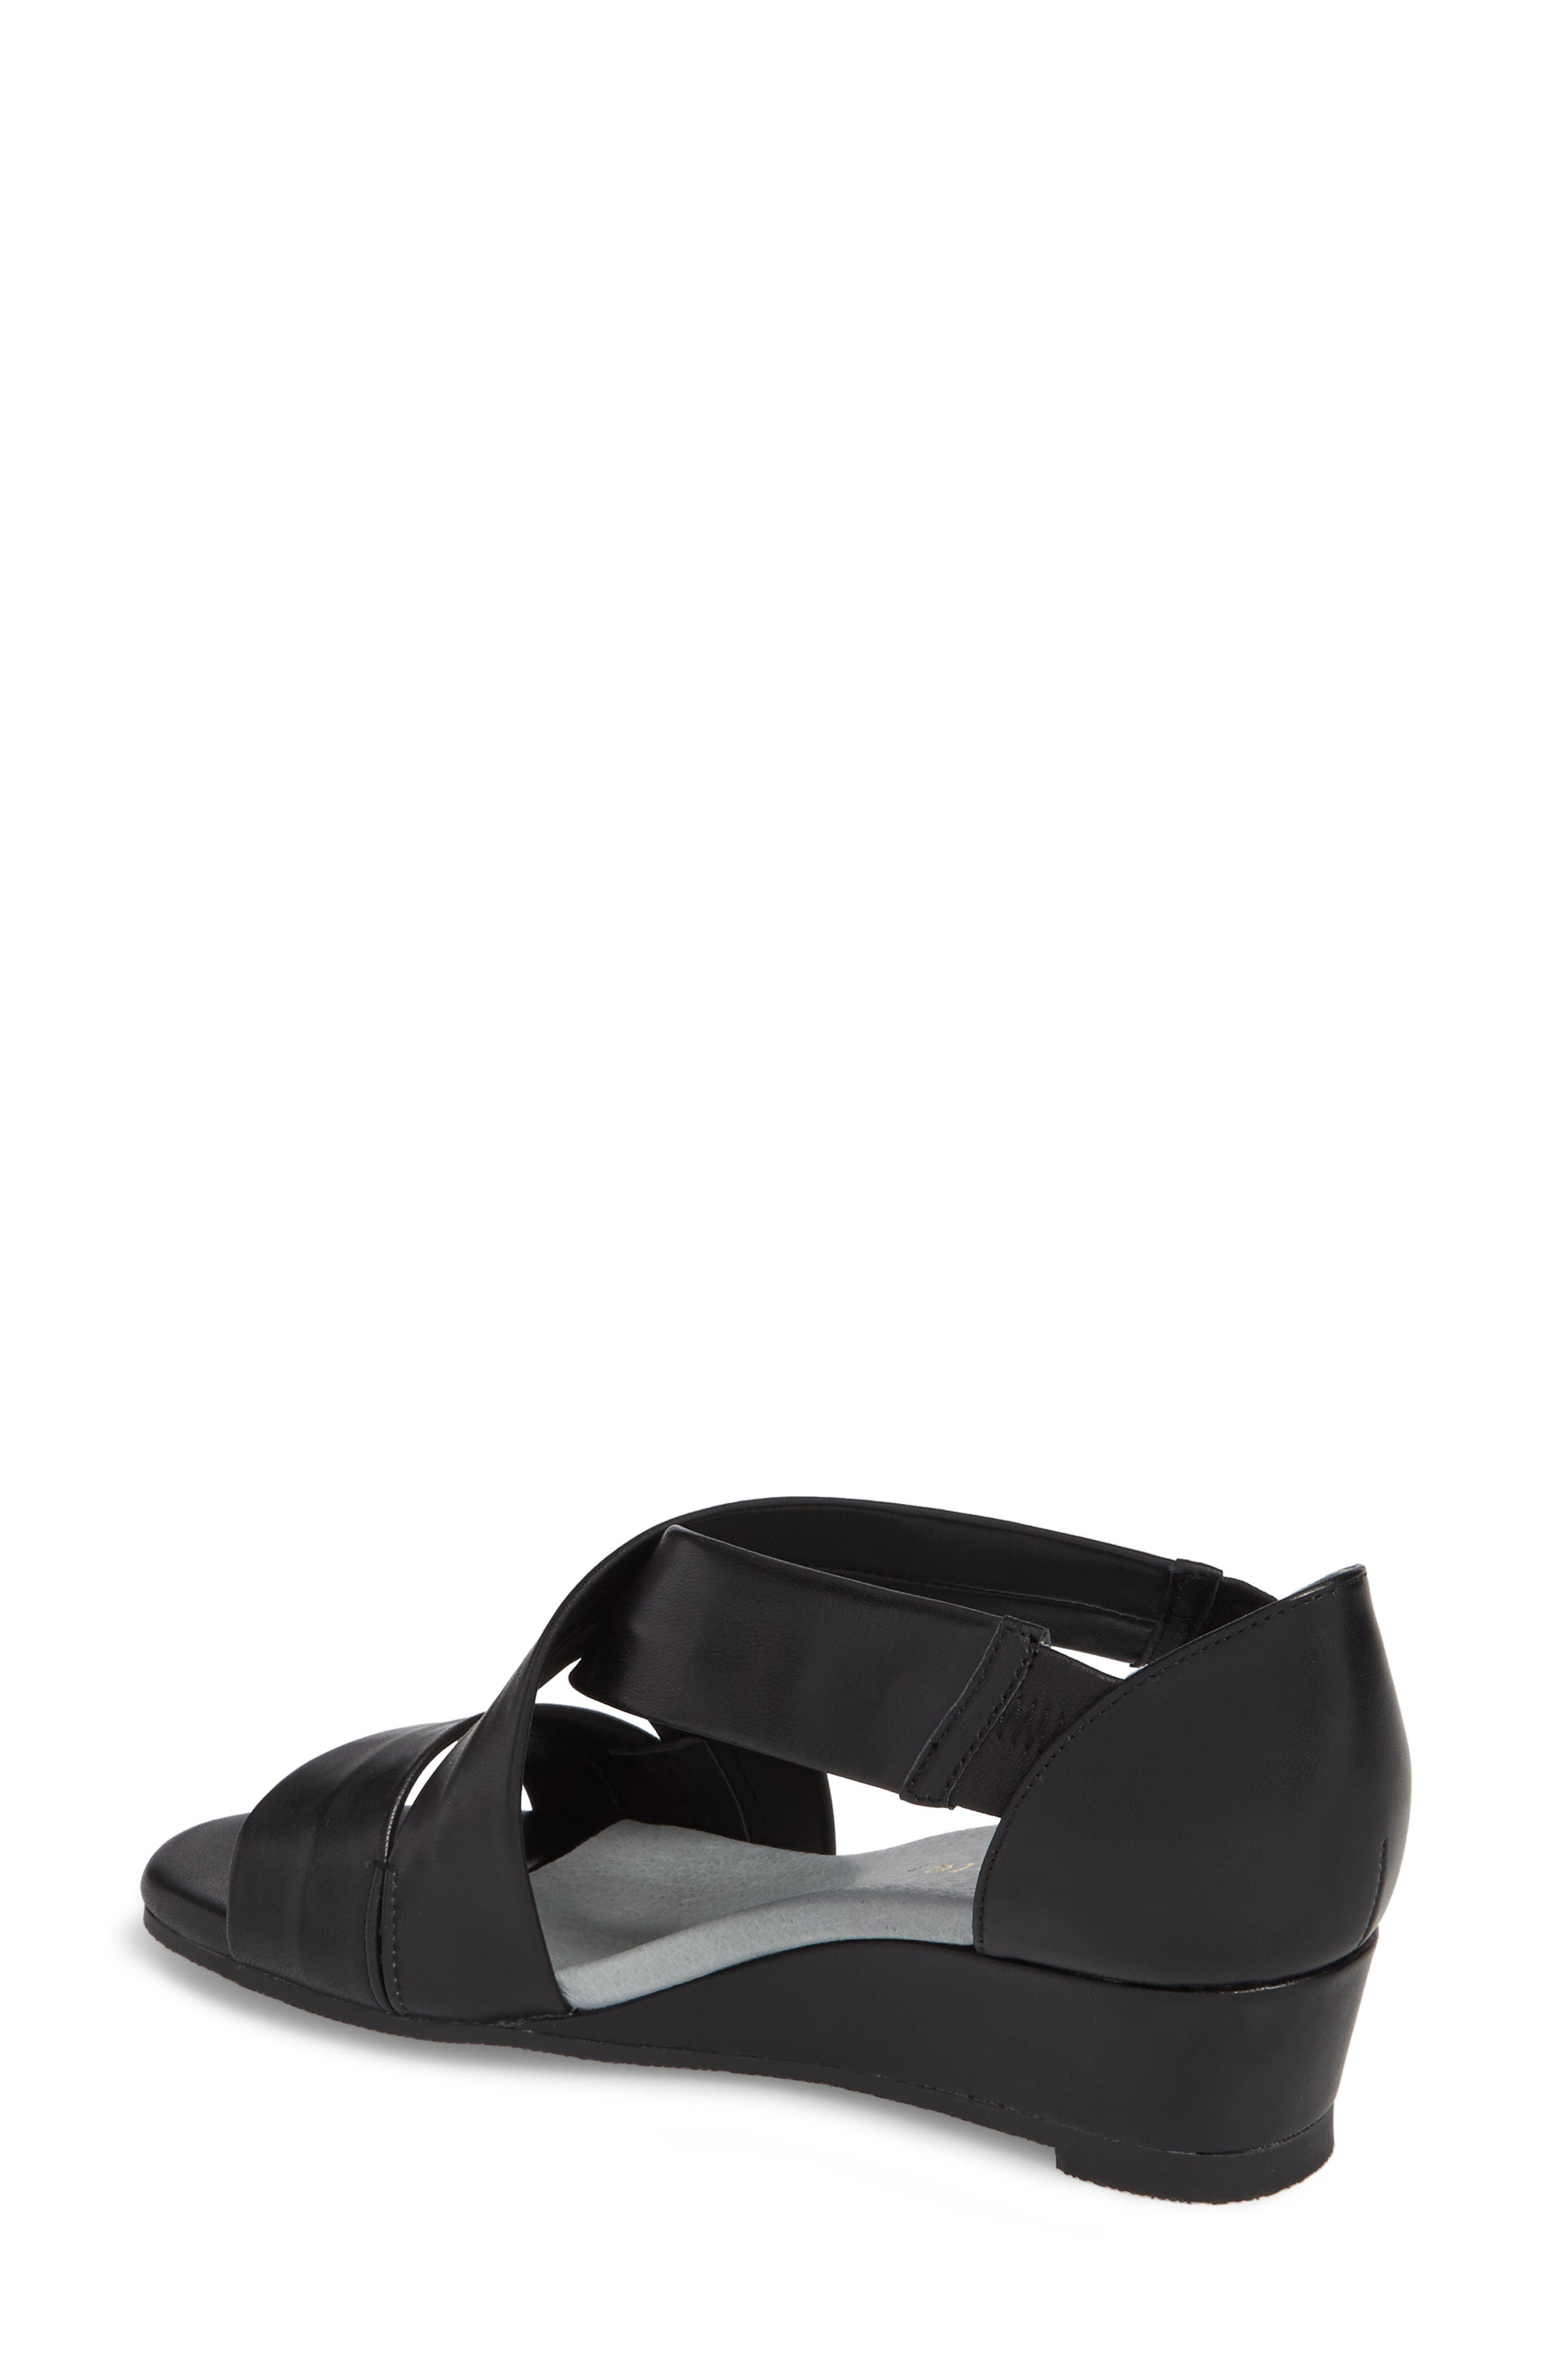 Swell Cross Strap Wedge Sandal,                             Alternate thumbnail 2, color,                             Black Leather